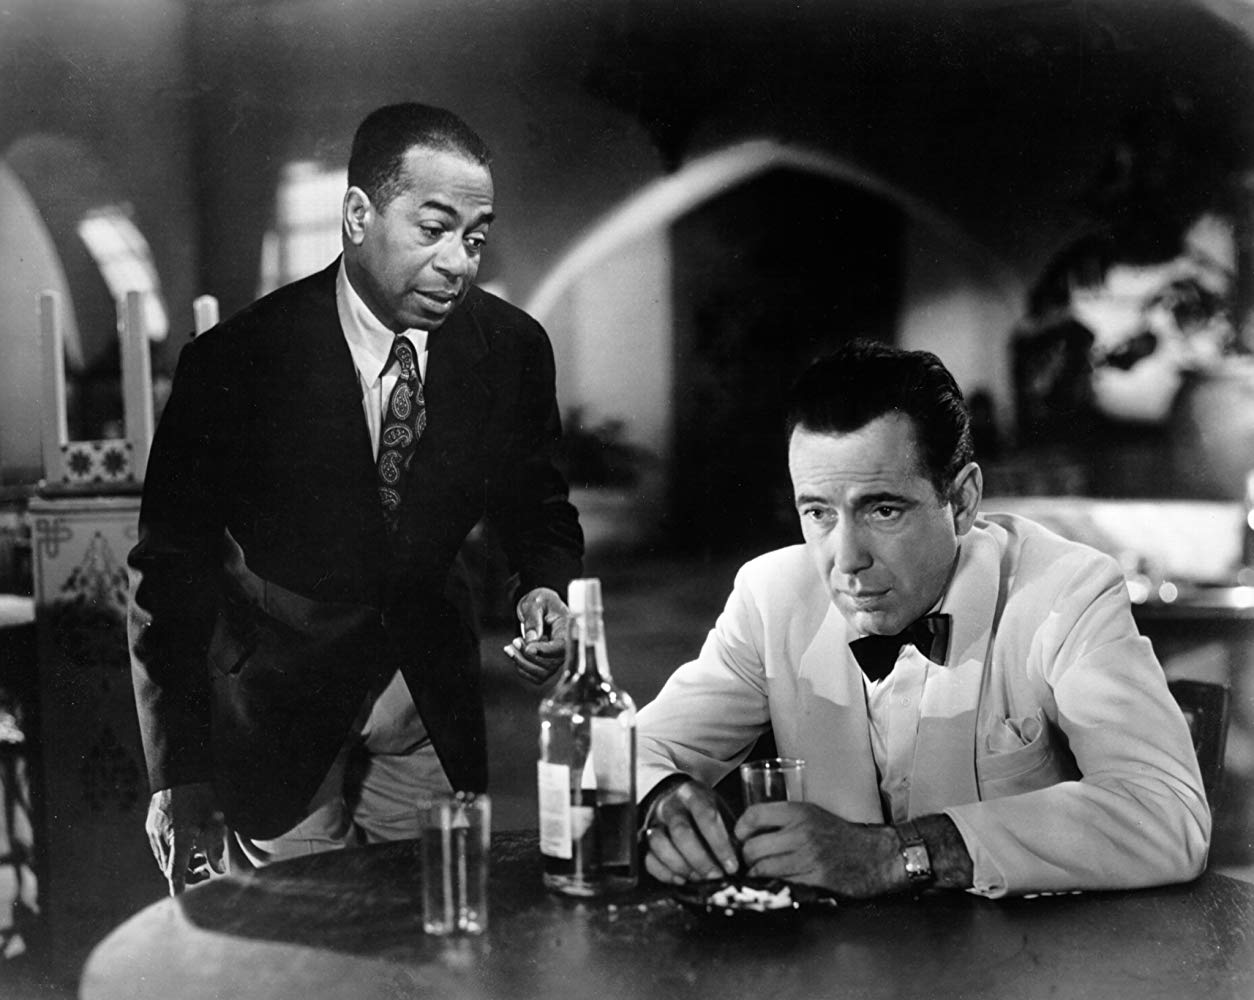 casablanca-cocktail-whiskey-movie.jpg